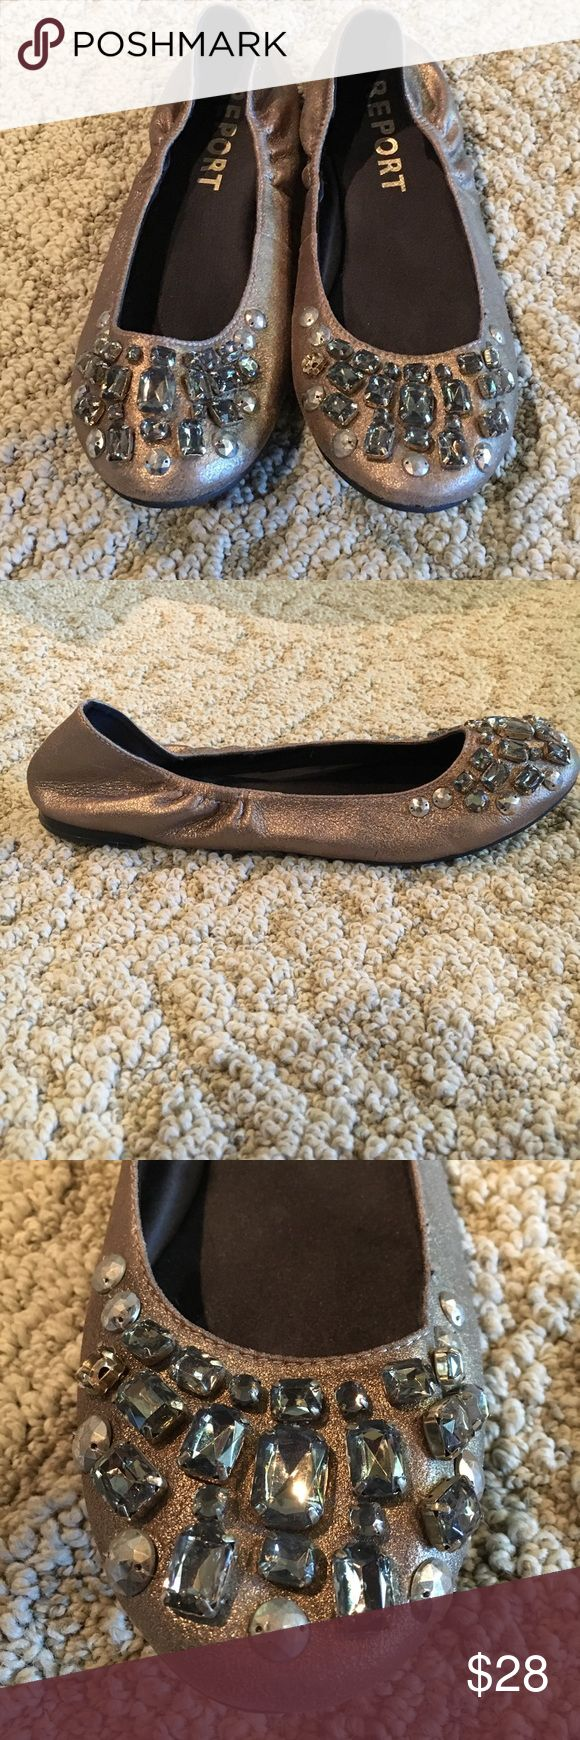 Bronze Gold Jeweled Ballet Slip-on Shoes Bronze Gold Jeweled Ballet Slip-on Shoes from Macy's. Very good quality. Shimmery color. Excellent Condition. Report Shoes Flats & Loafers